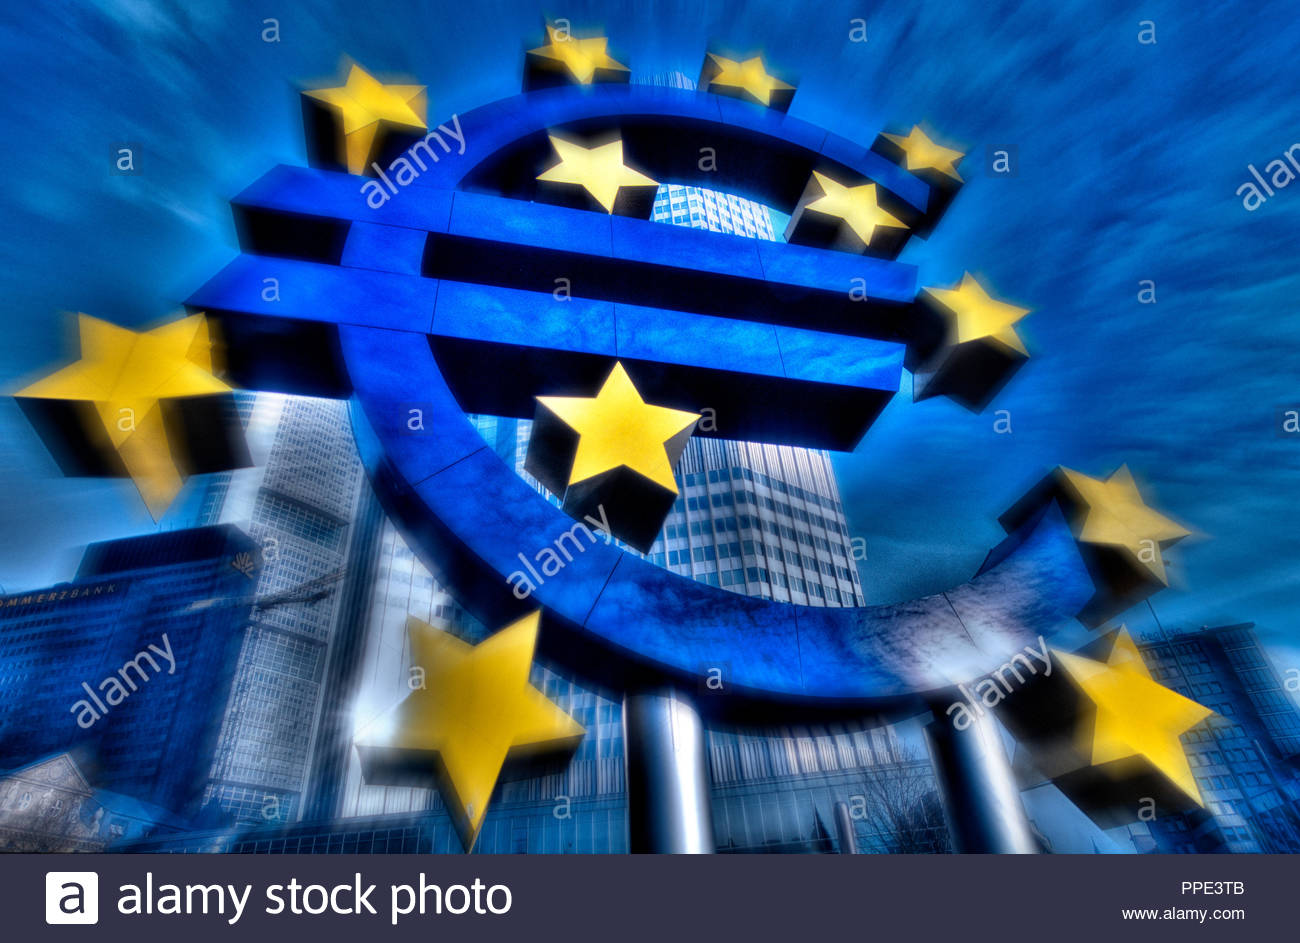 Germany, Hesse, Frankfurt am Main. Euro sign in front of the former European Central Bank ECB. [m}  Deutschland, Hessen, Frankfurt am Main. Euro-Zeich - Stock Image